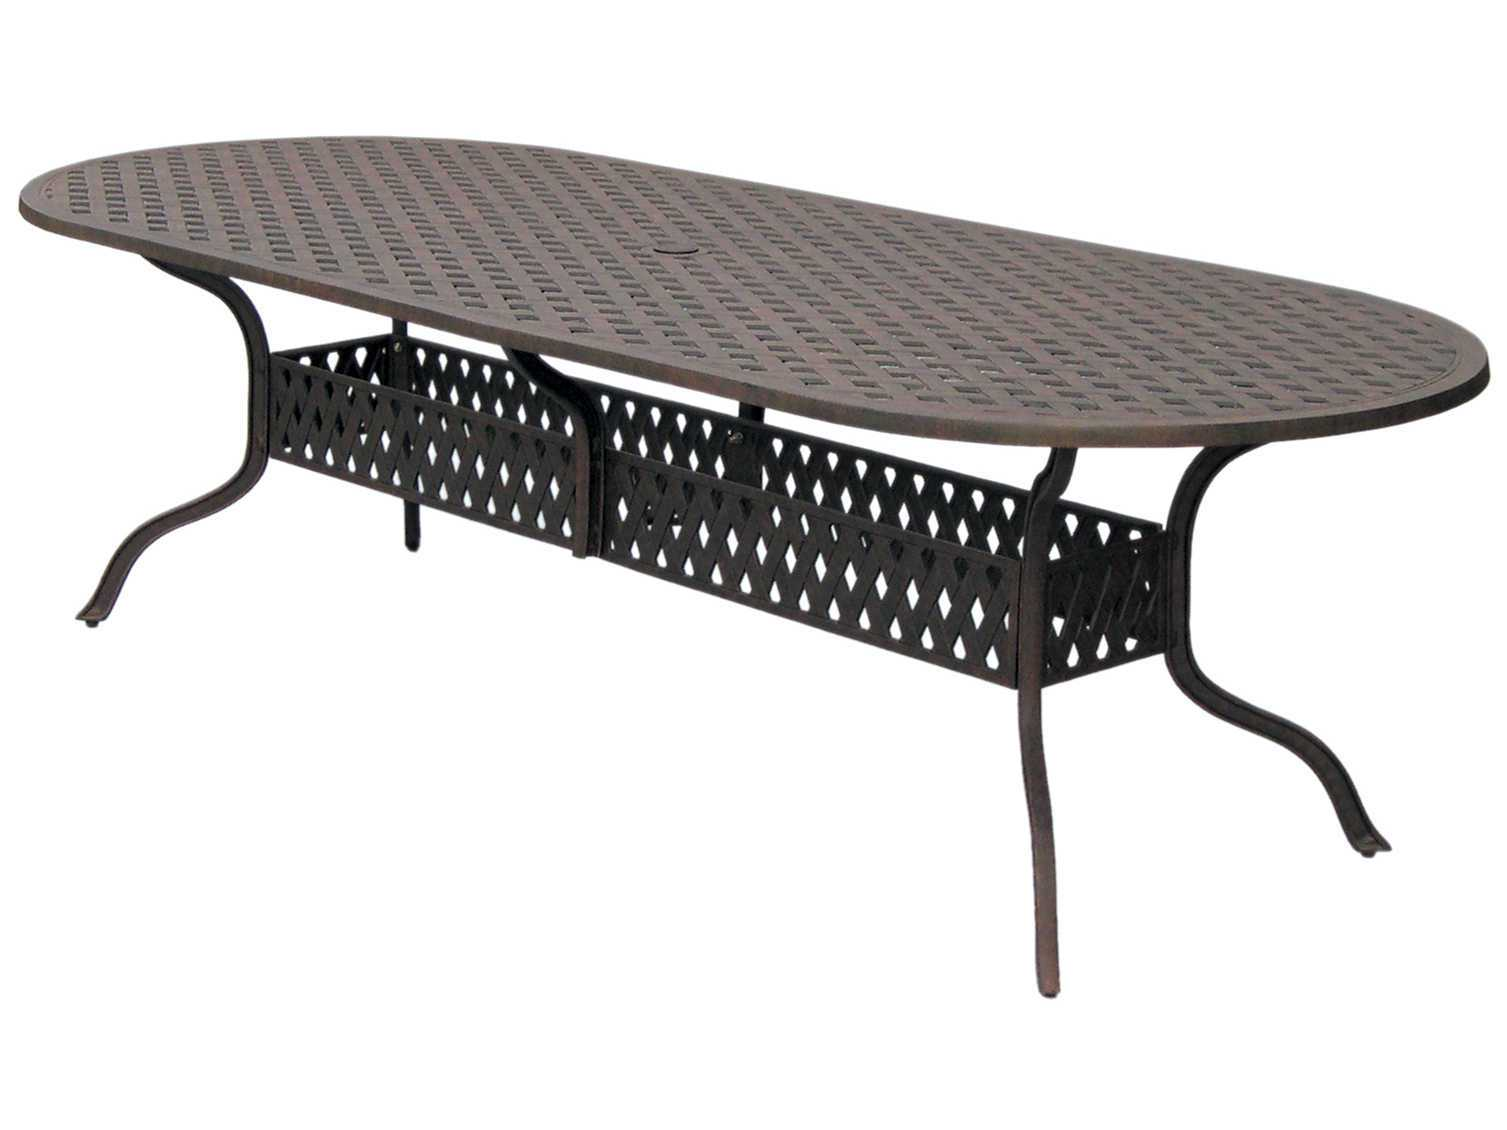 darlee outdoor living series 30 cast aluminum antique bronze 102 x 42 oval dining table dl30 xl. Black Bedroom Furniture Sets. Home Design Ideas